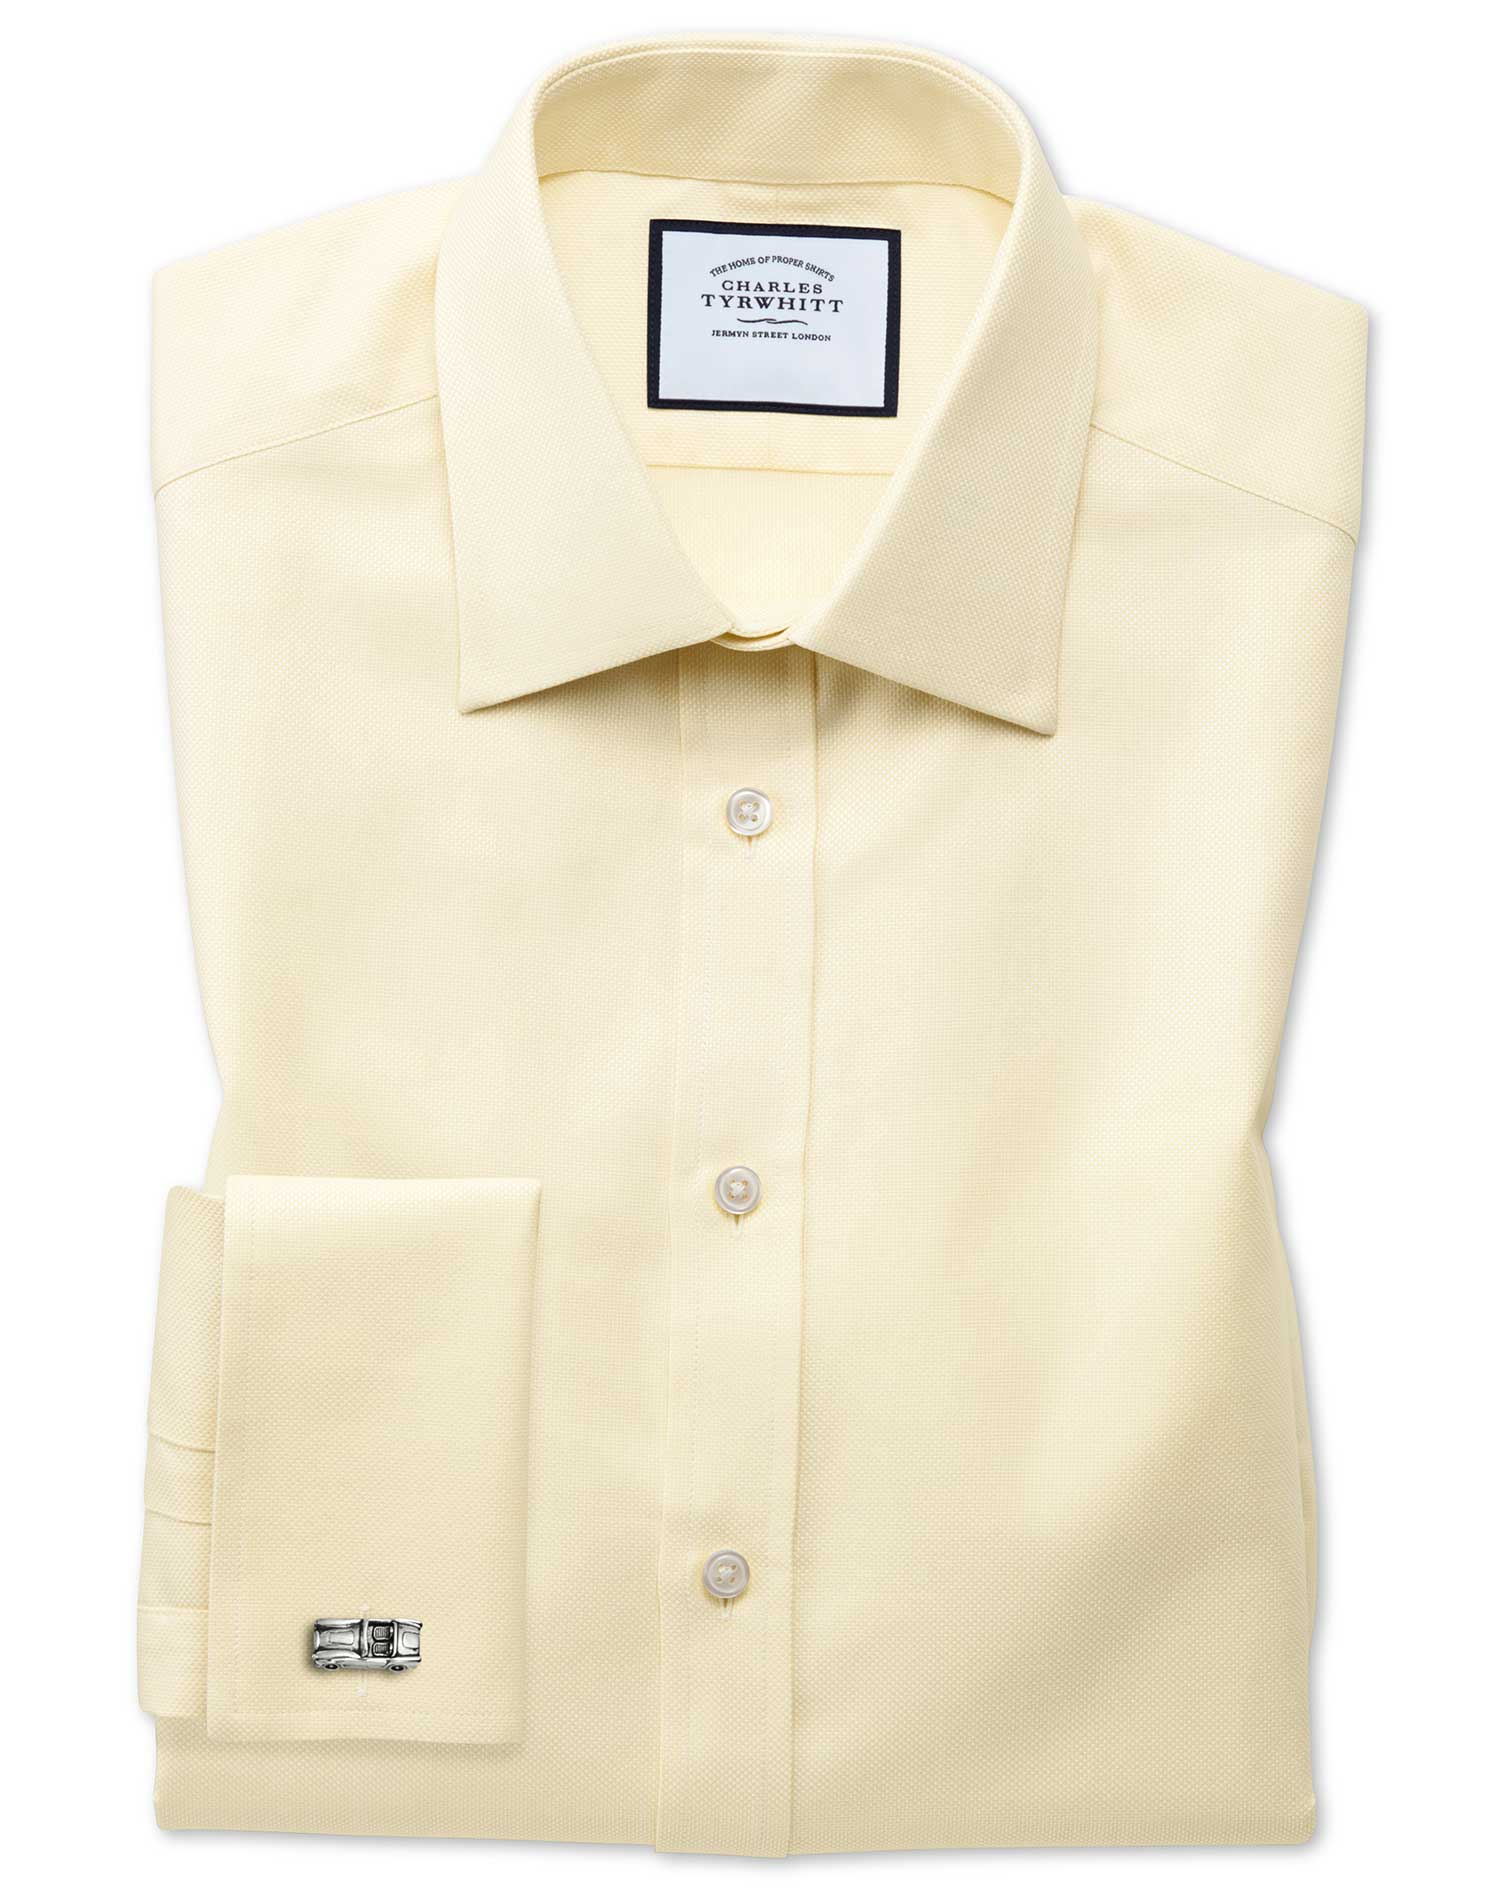 Extra Slim Fit Egyptian Cotton Royal Oxford Yellow Formal Shirt Double Cuff Size 15/33 by Charles Ty